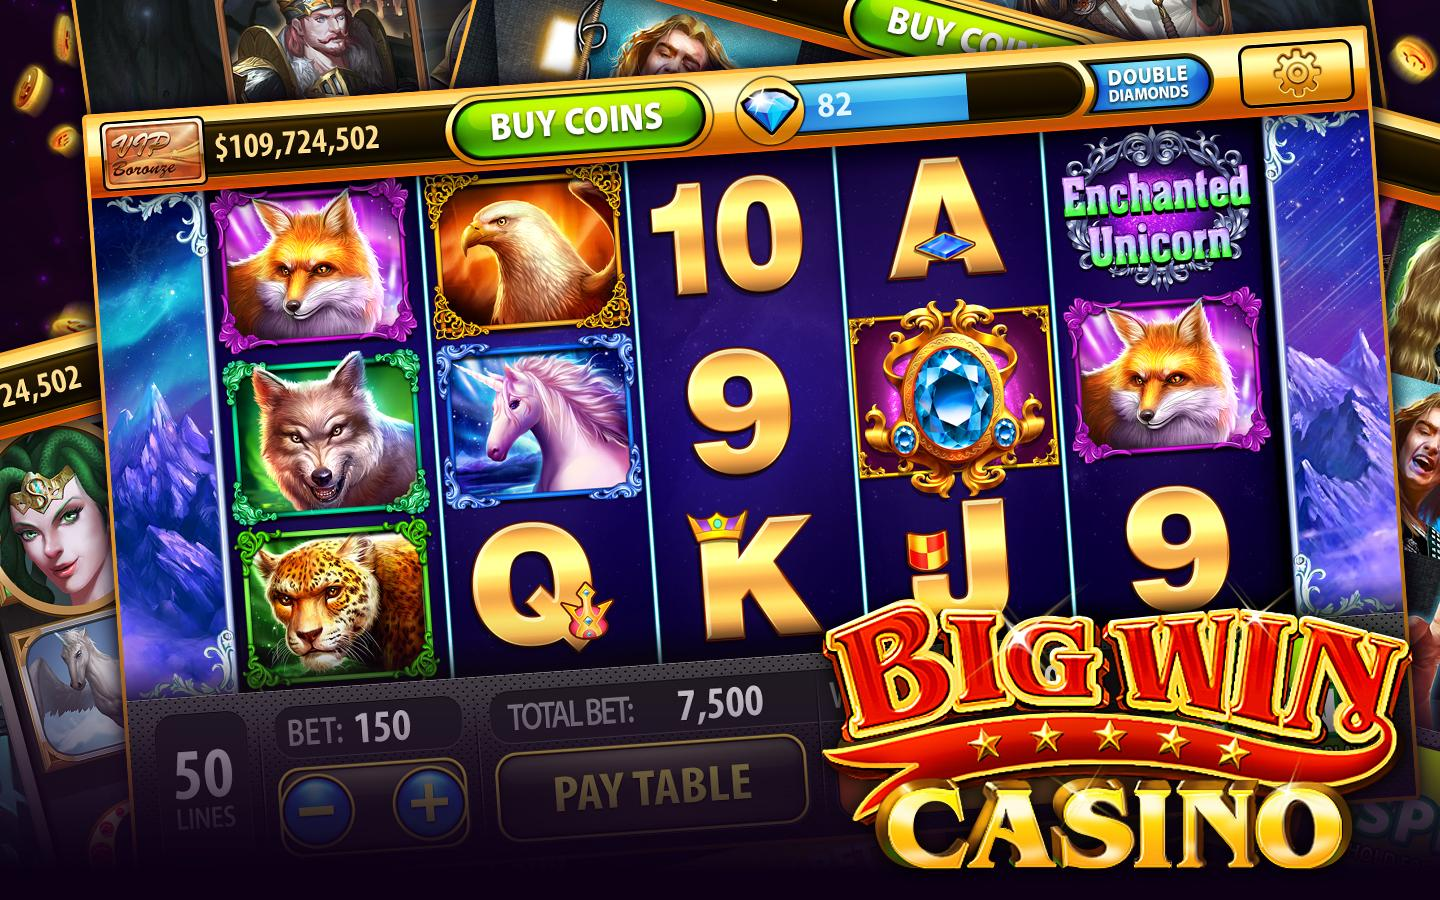 Winning Lot Slot Machine - Play for Free Online Today